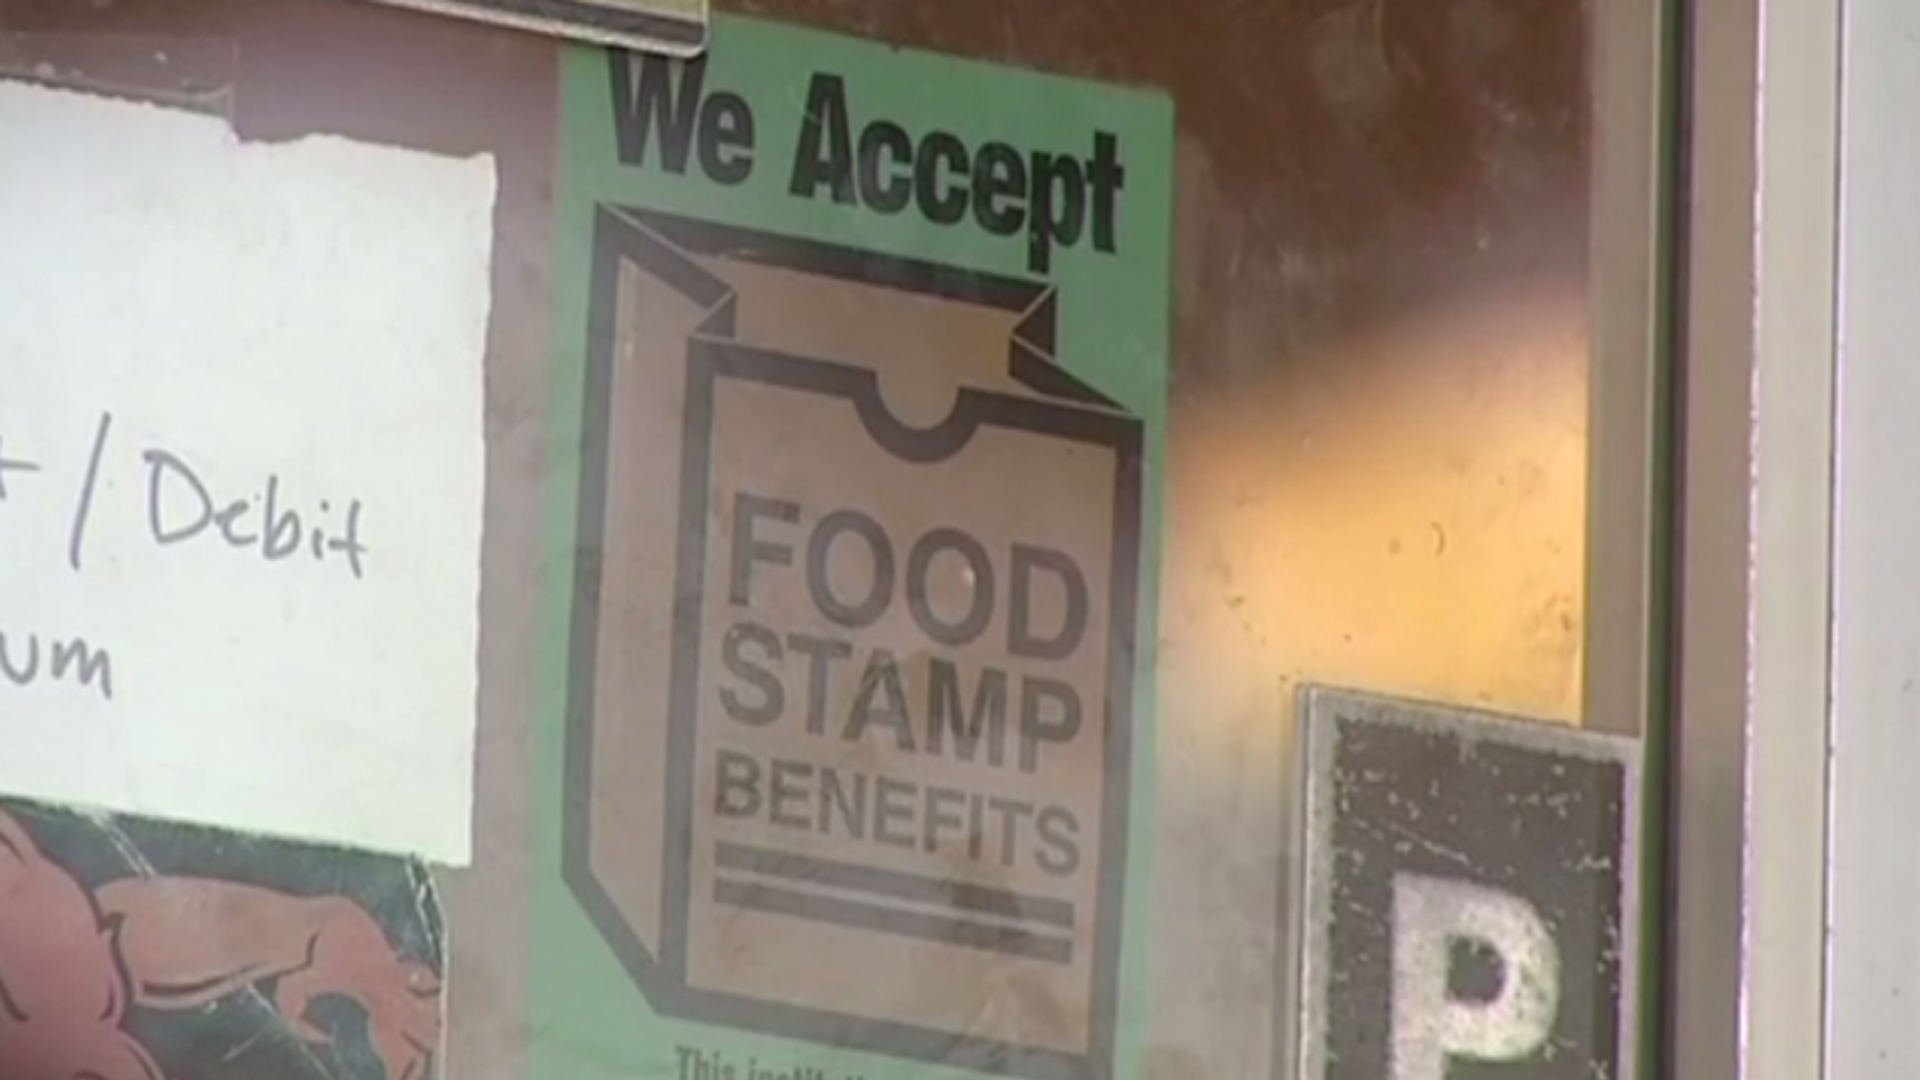 Snap Food Stamp Office